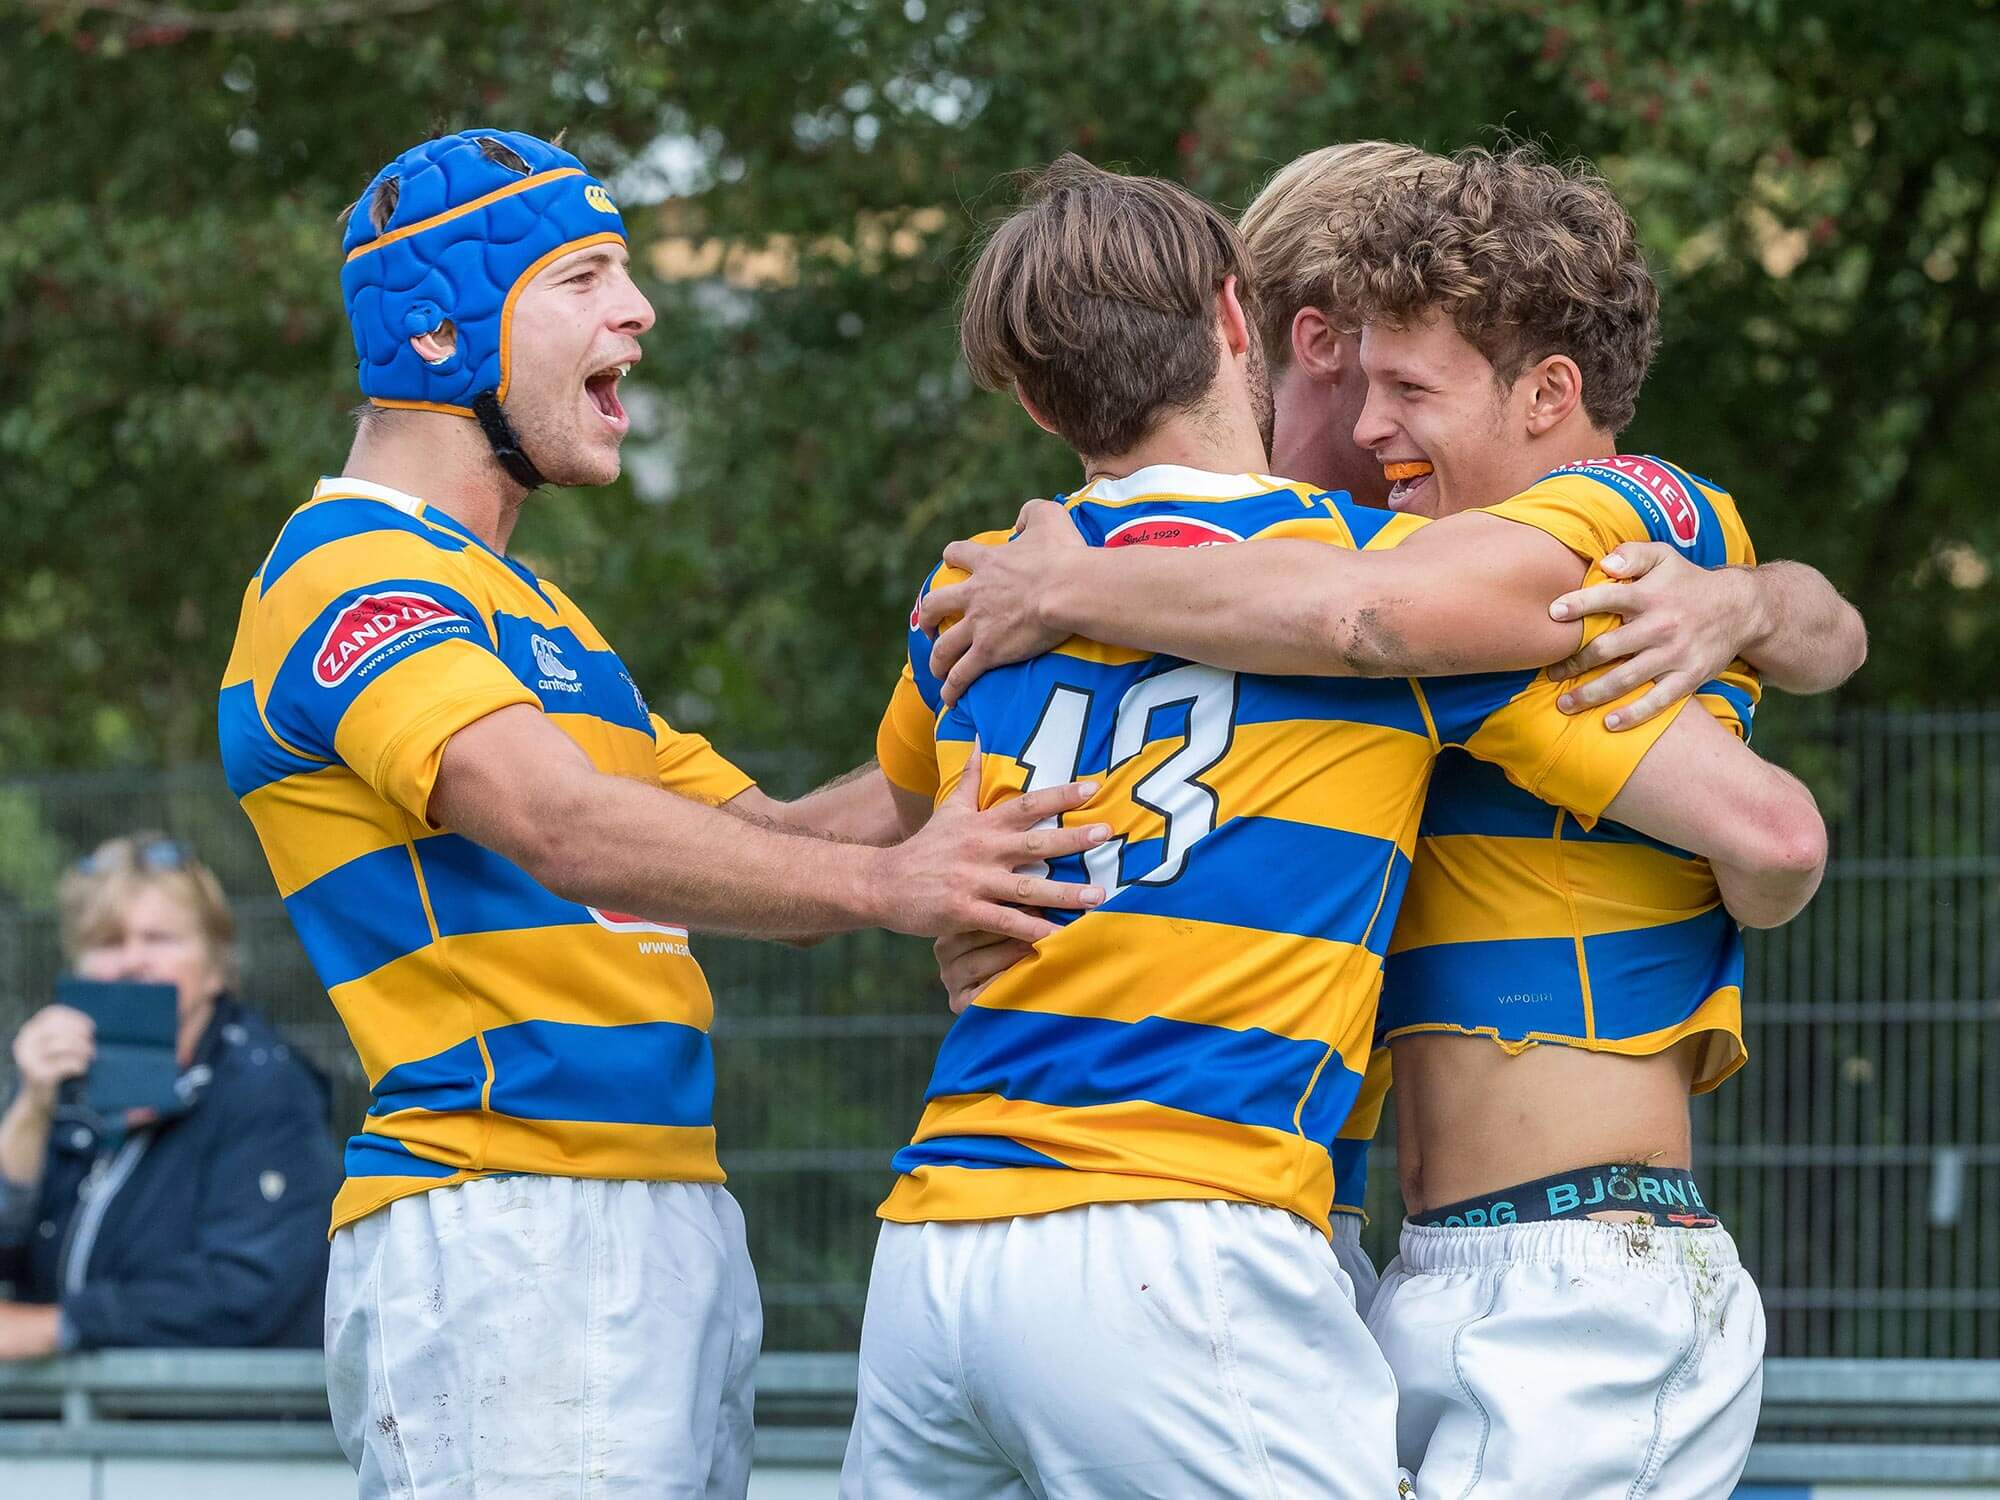 Haagsce Rugby Club - HRC 1